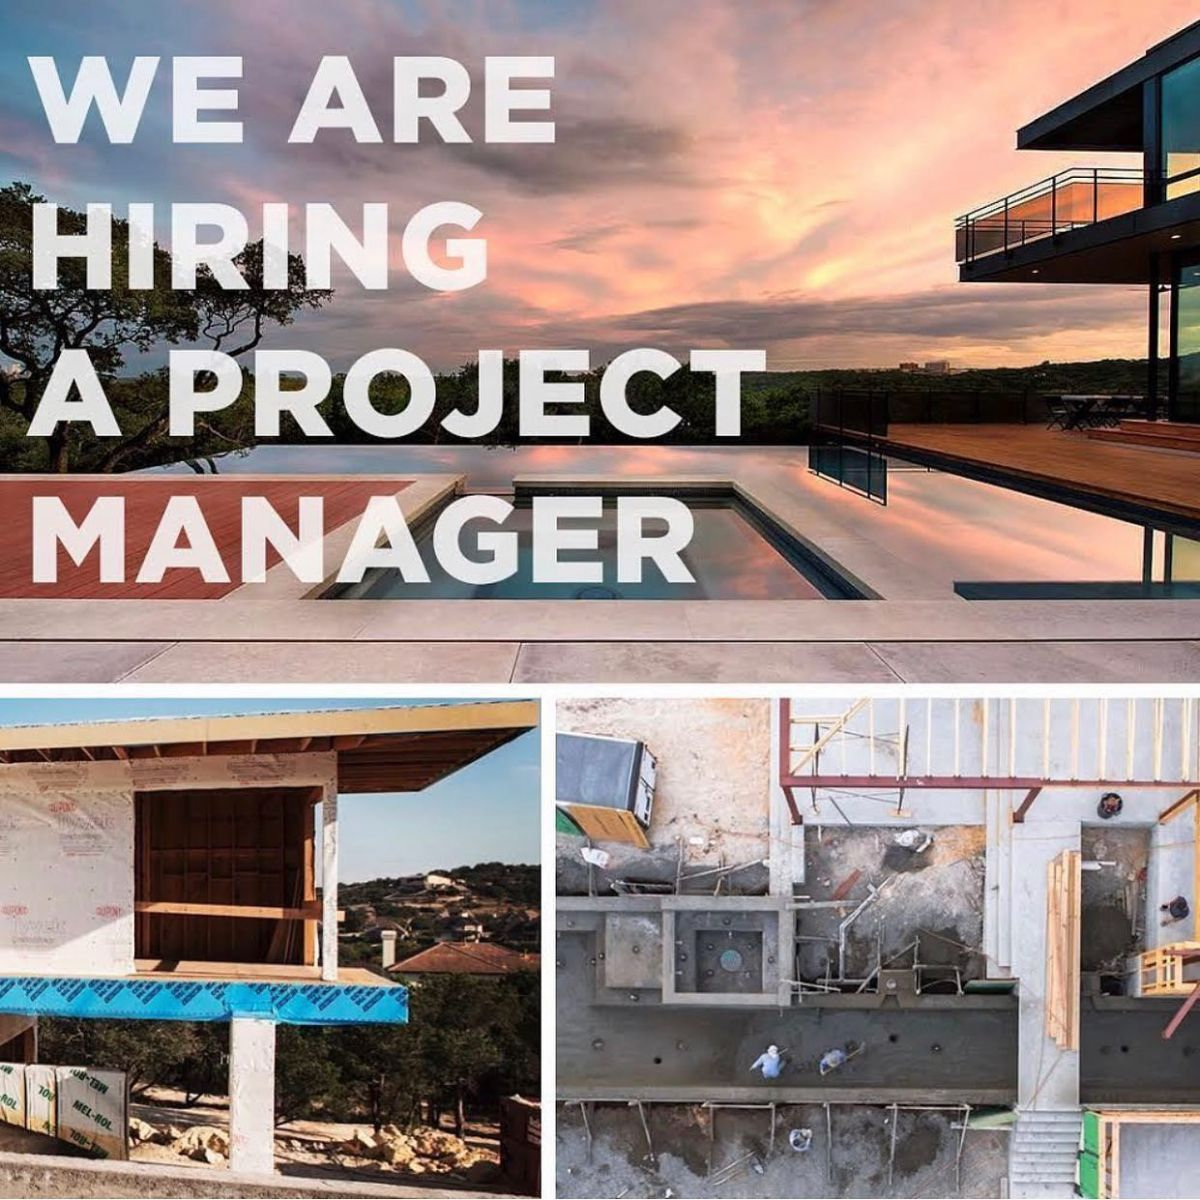 If you're a seasoned Project Manager or Superintendent then please give us a call. We have incredible projects to build and are looking for those who what to be a part of a team of professionals.